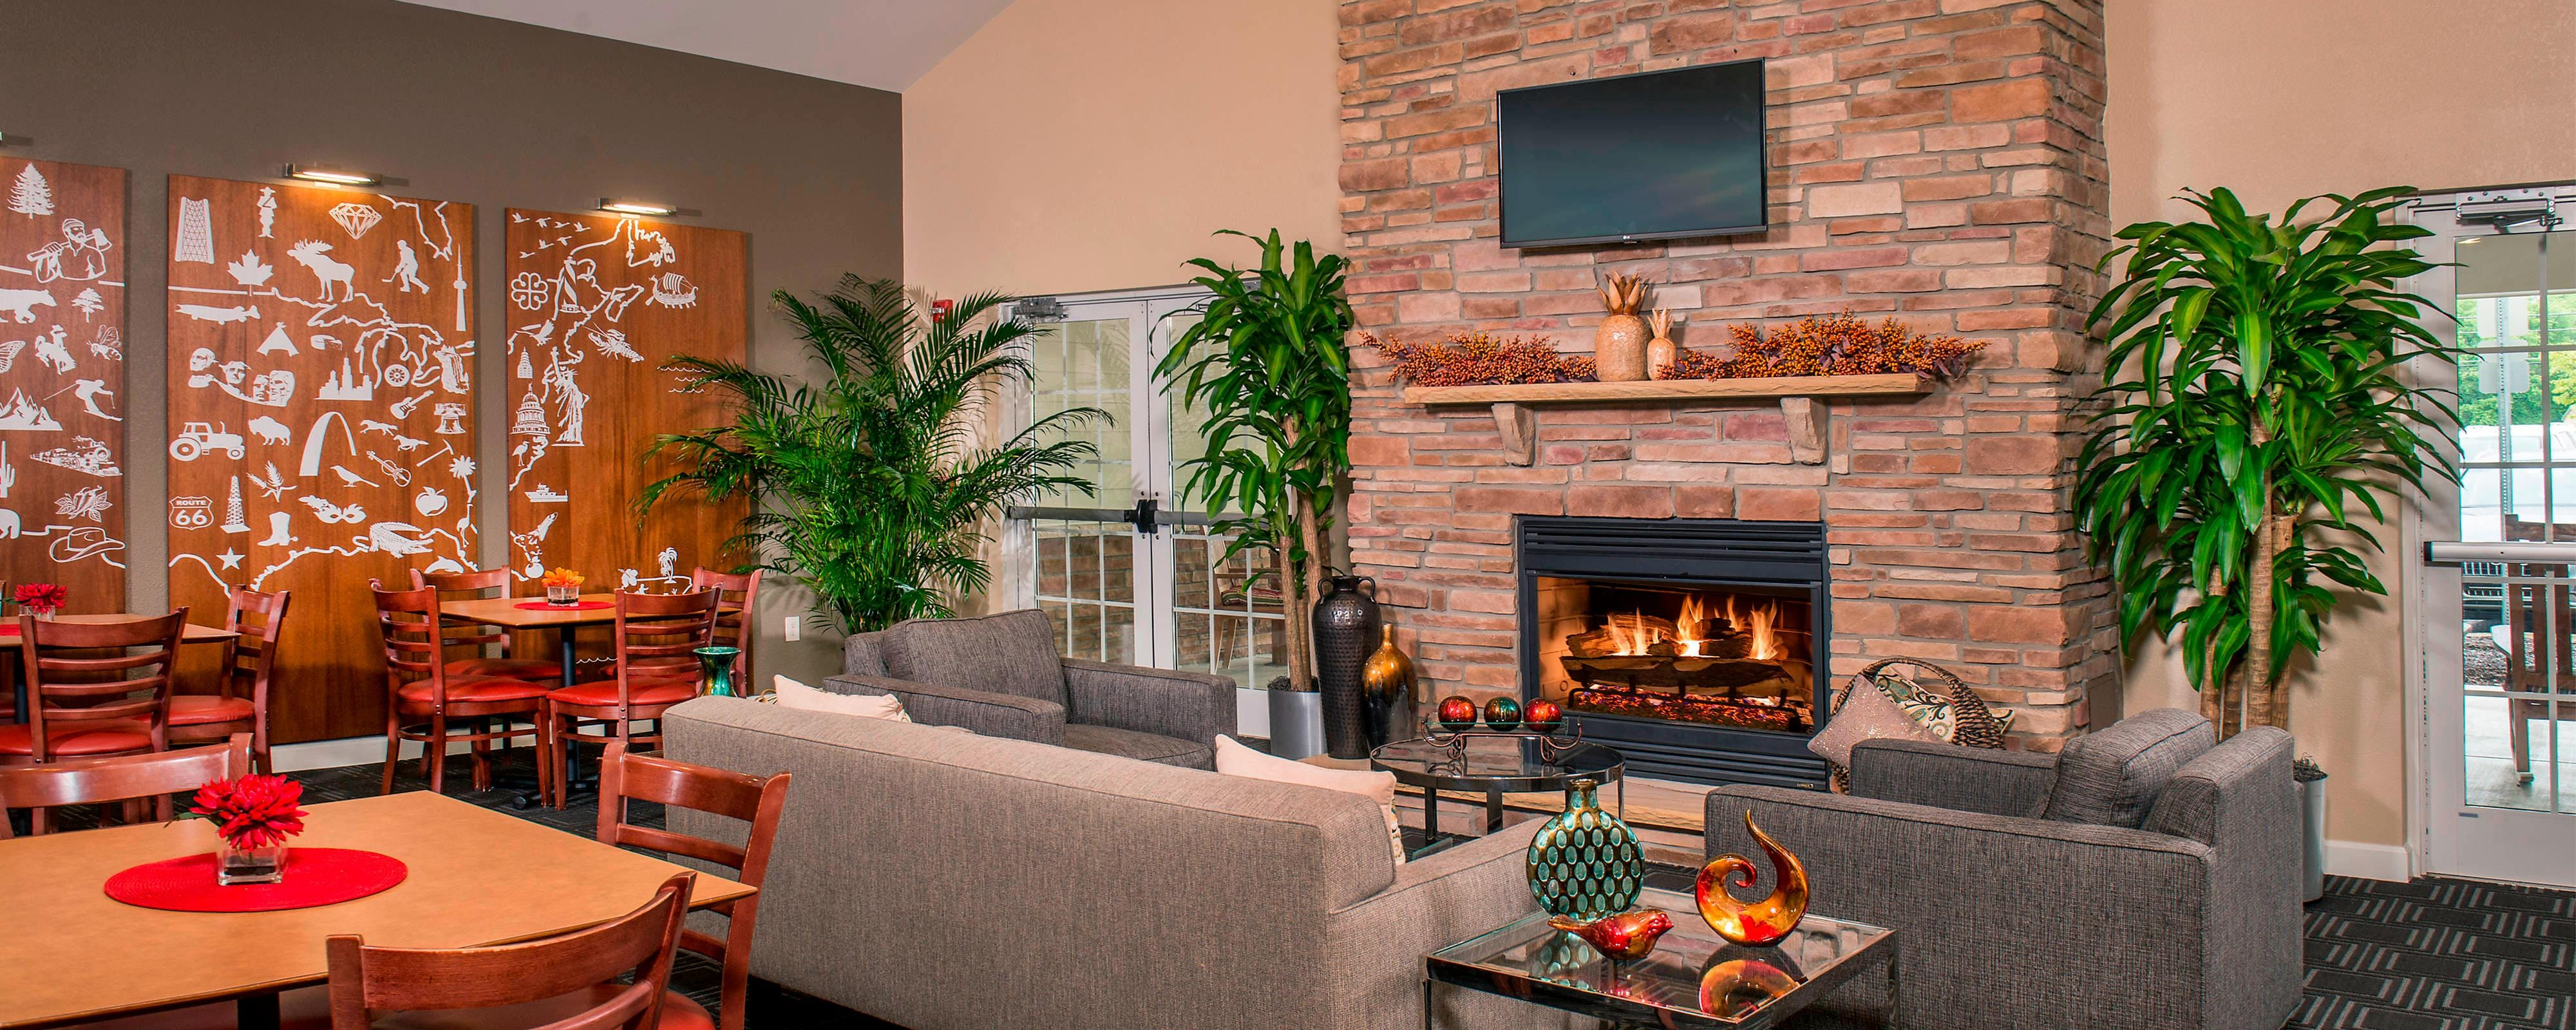 The Springhill Suites by Marriott Atlanta Six Flags welcomes you to beautiful Atlanta, GA. located 3 miles from Six Flags over Georgia, 15 minutes from downtown Atlanta, Hartsfield-Jackson International Airport & Gateway Center, our hotel assures you have everything necessary to inspire you to .